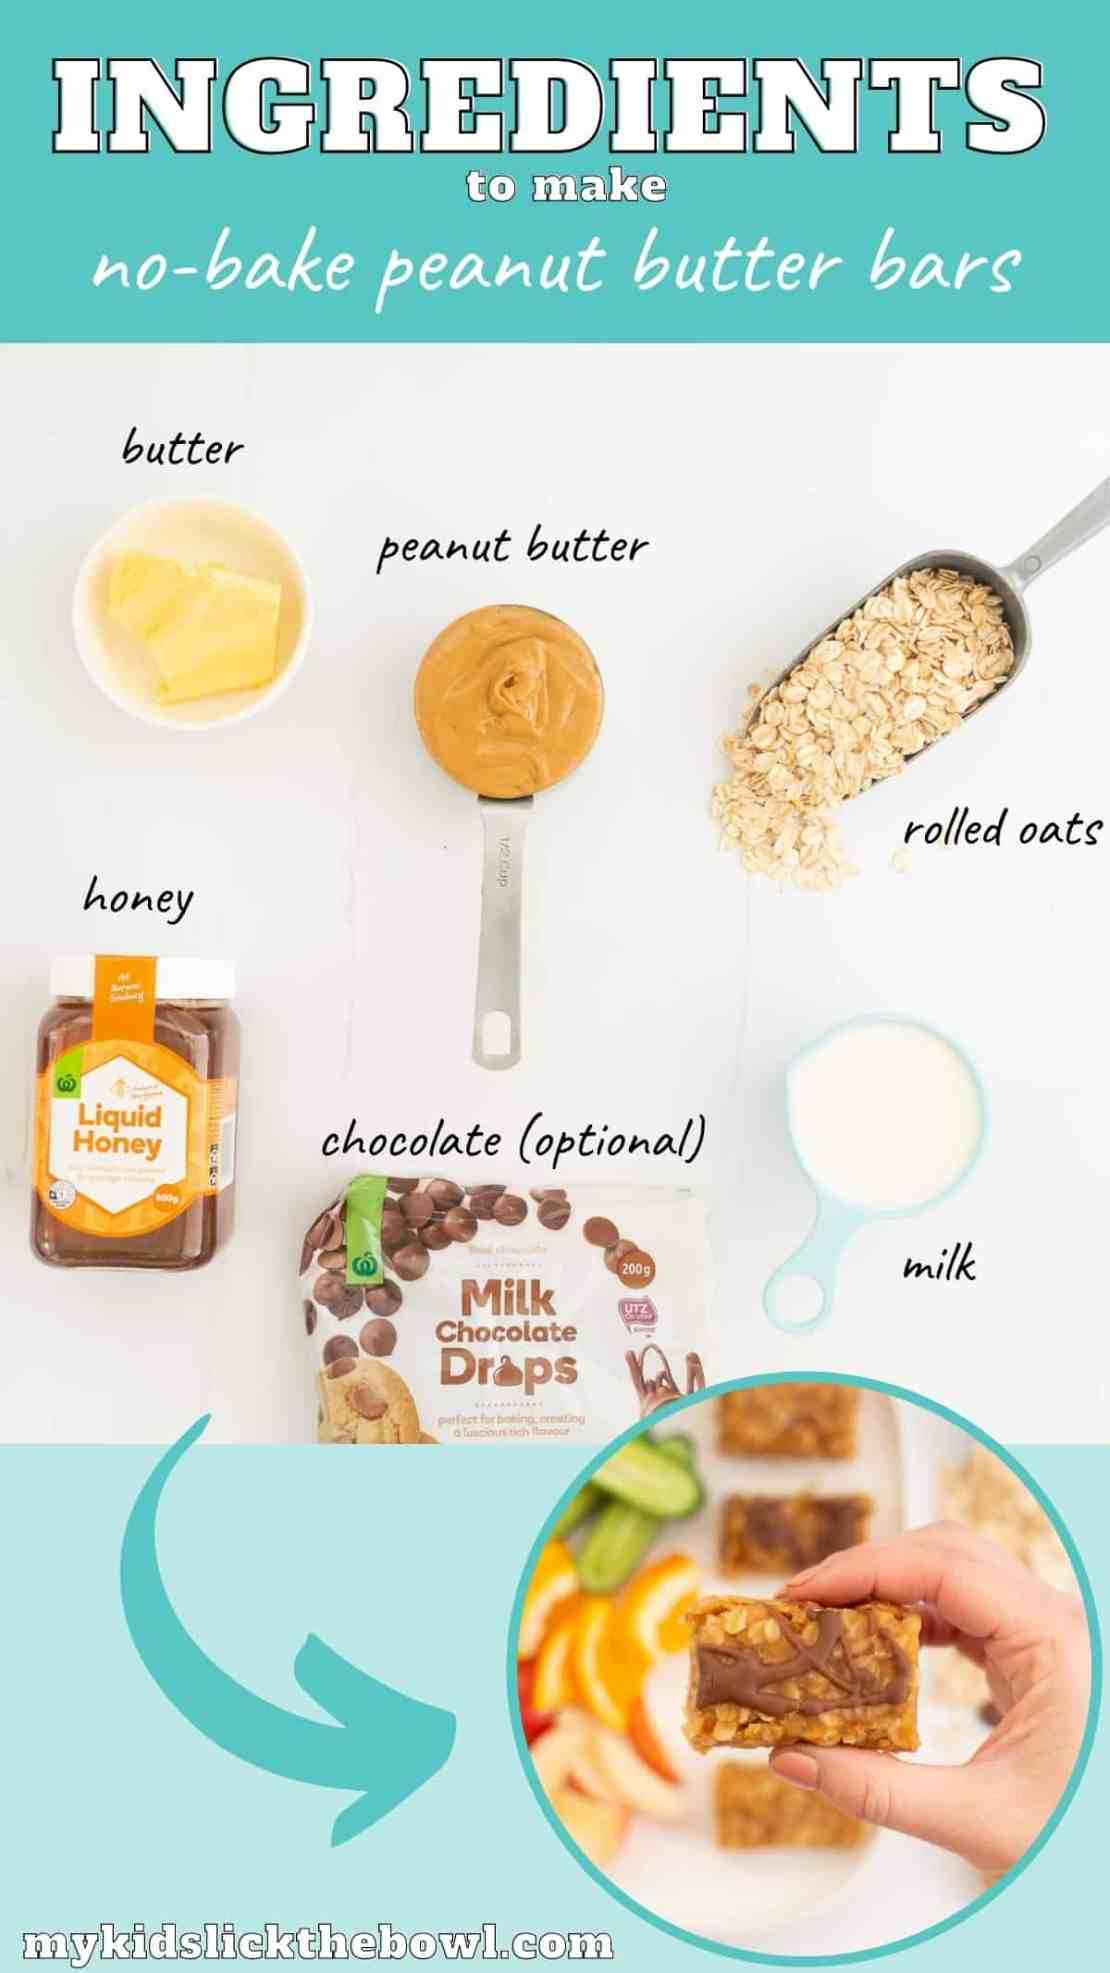 The ingredients to make peanut butter bars laid out on a bench top with text overlay.